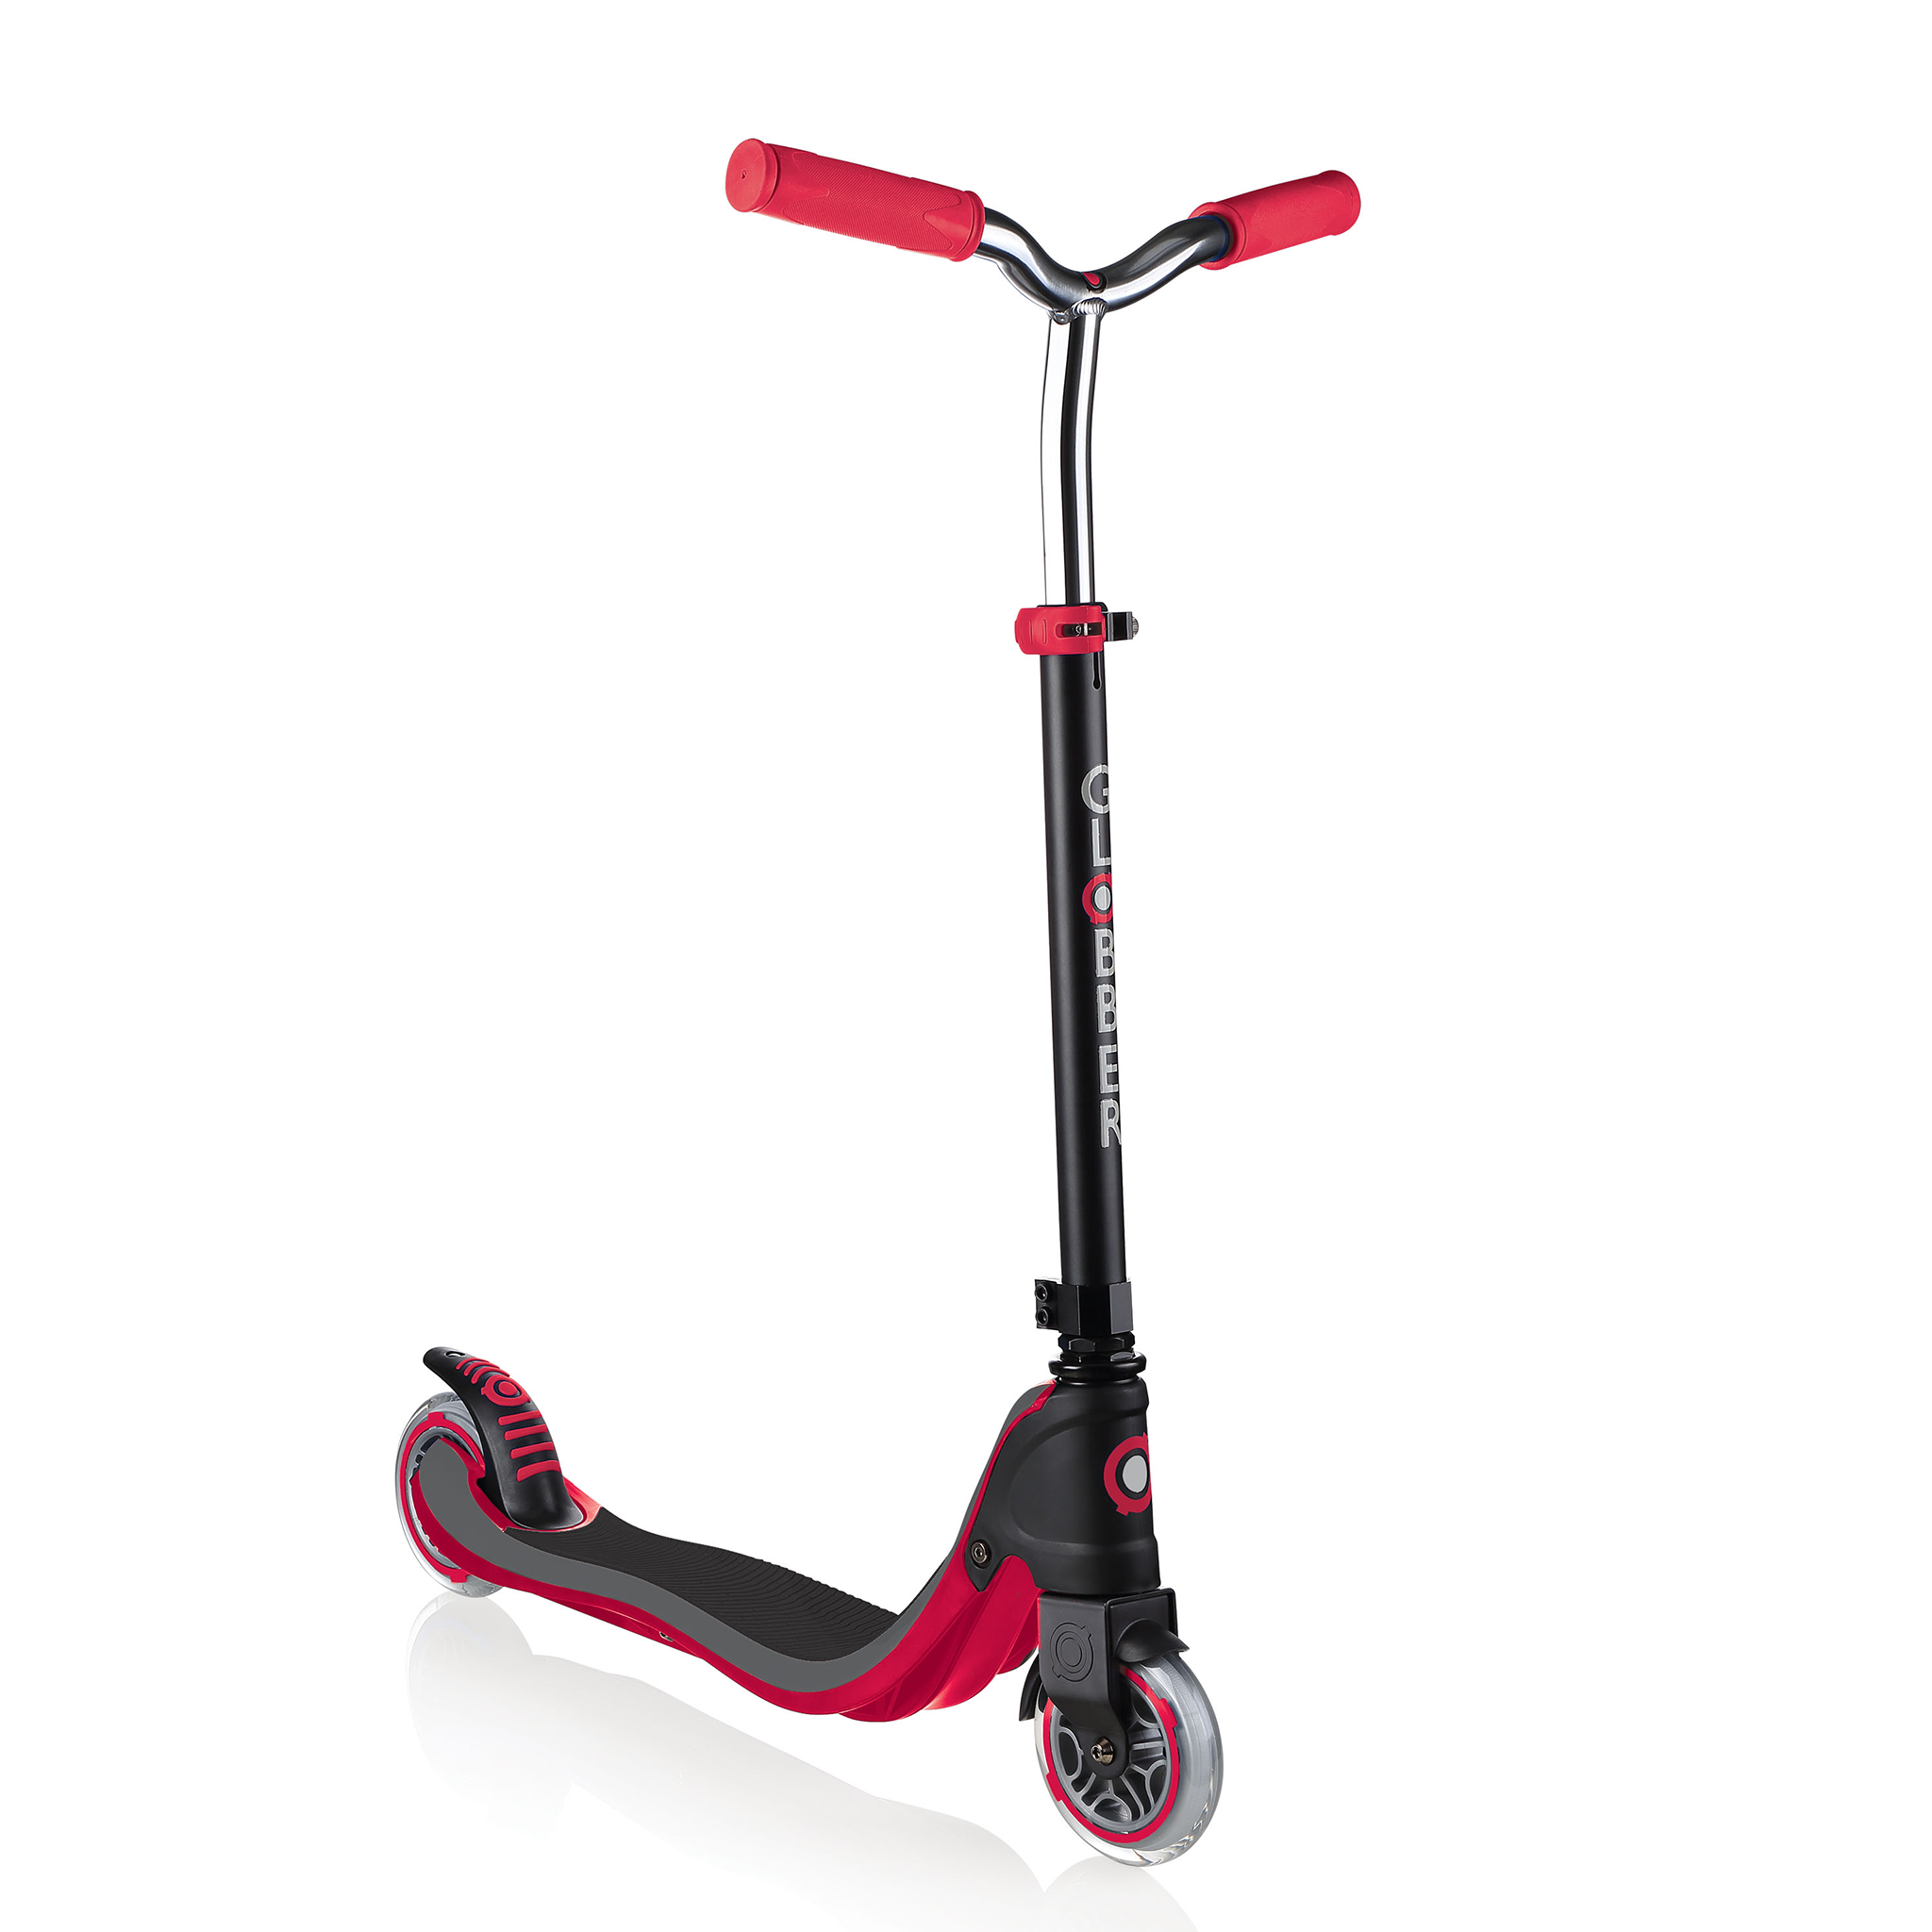 scooter for teenage boy and girl - Globber FLOW 125 0